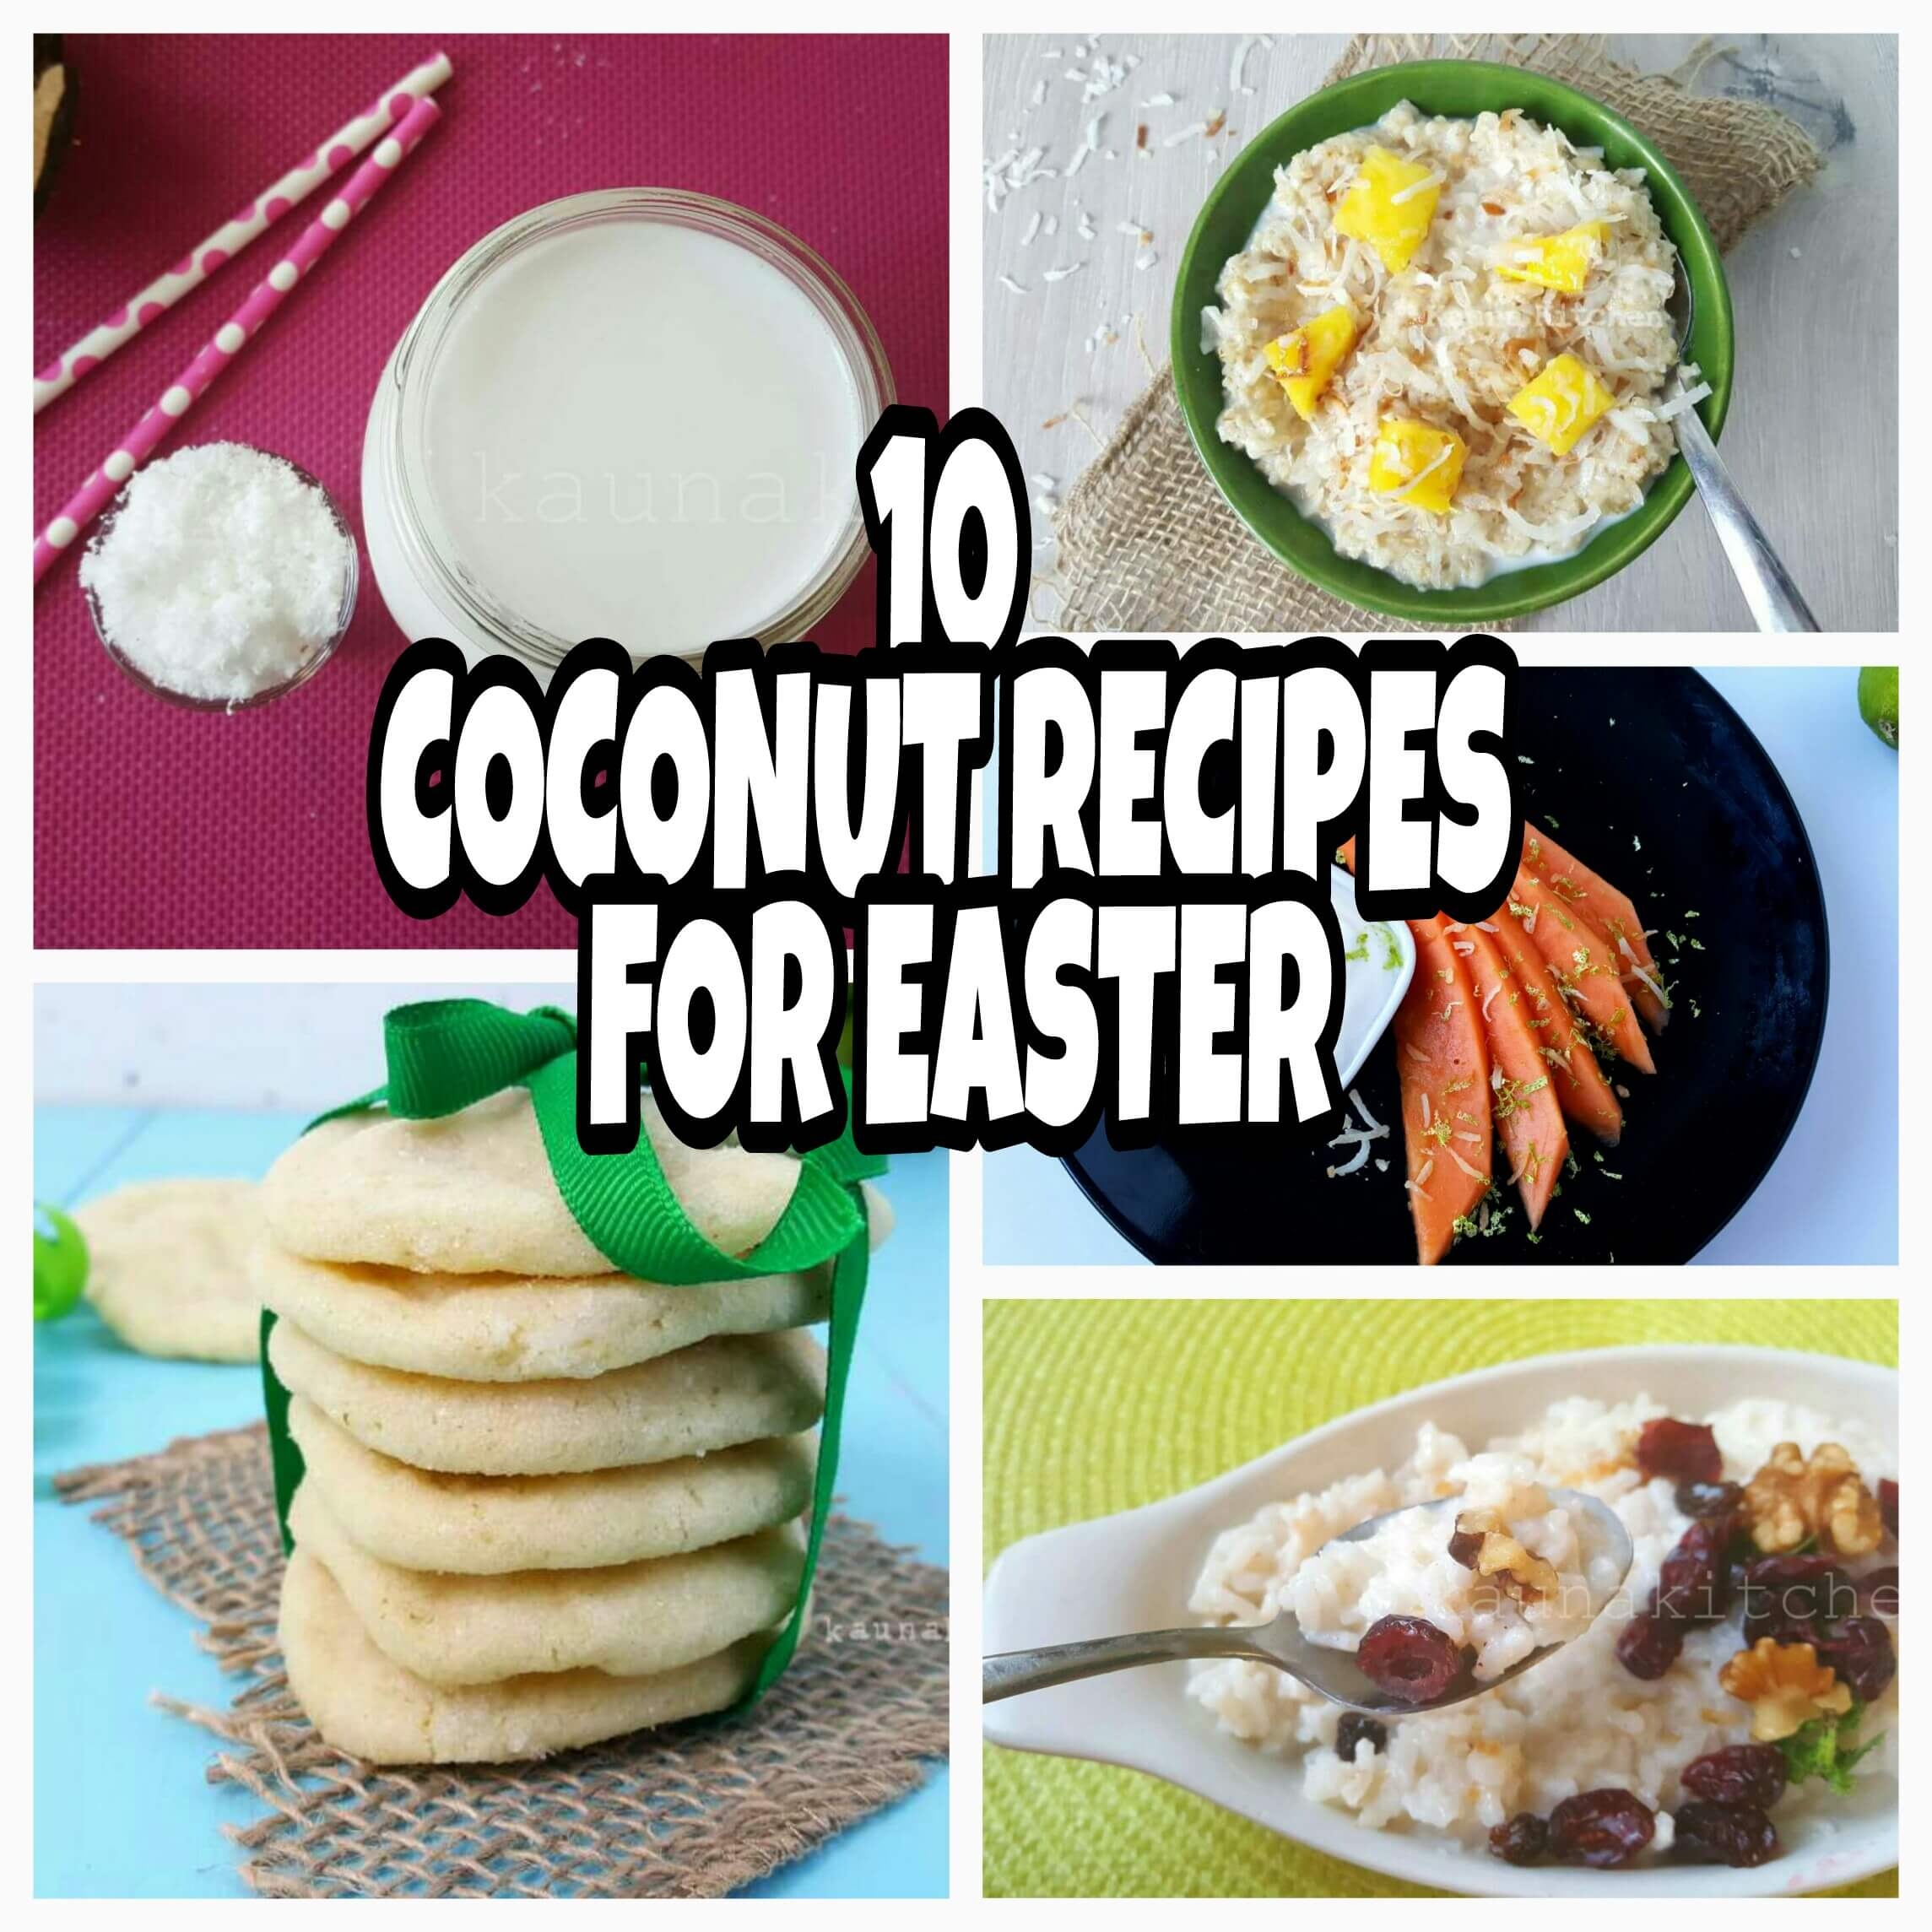 nigerian cooconut recipes for easter